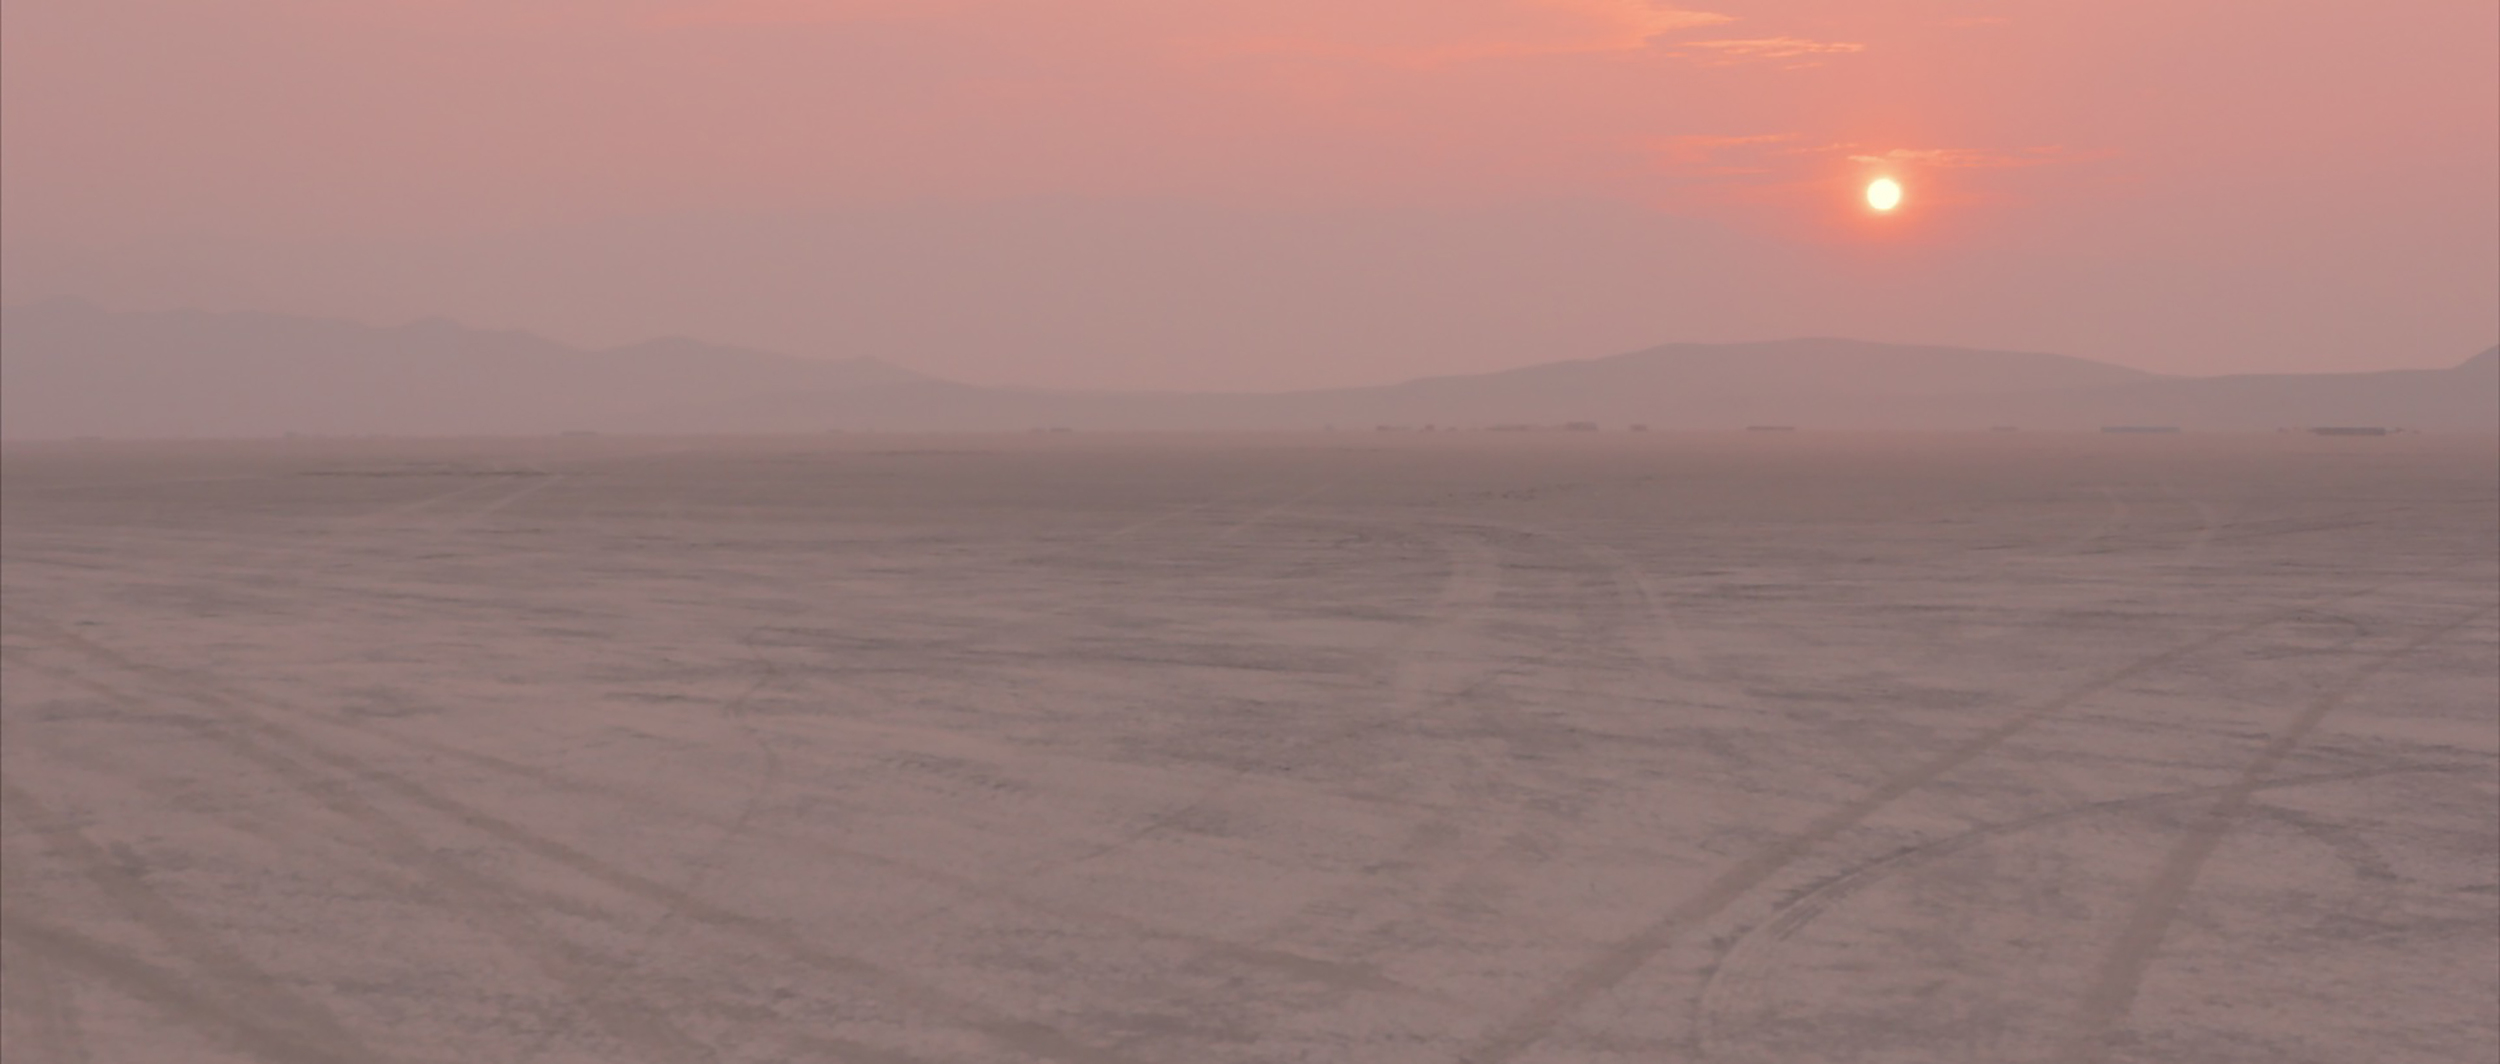 Frame grab from our insanely great Sony FS7 camera, filmed on location in the Black Rock Desert, Nevada.